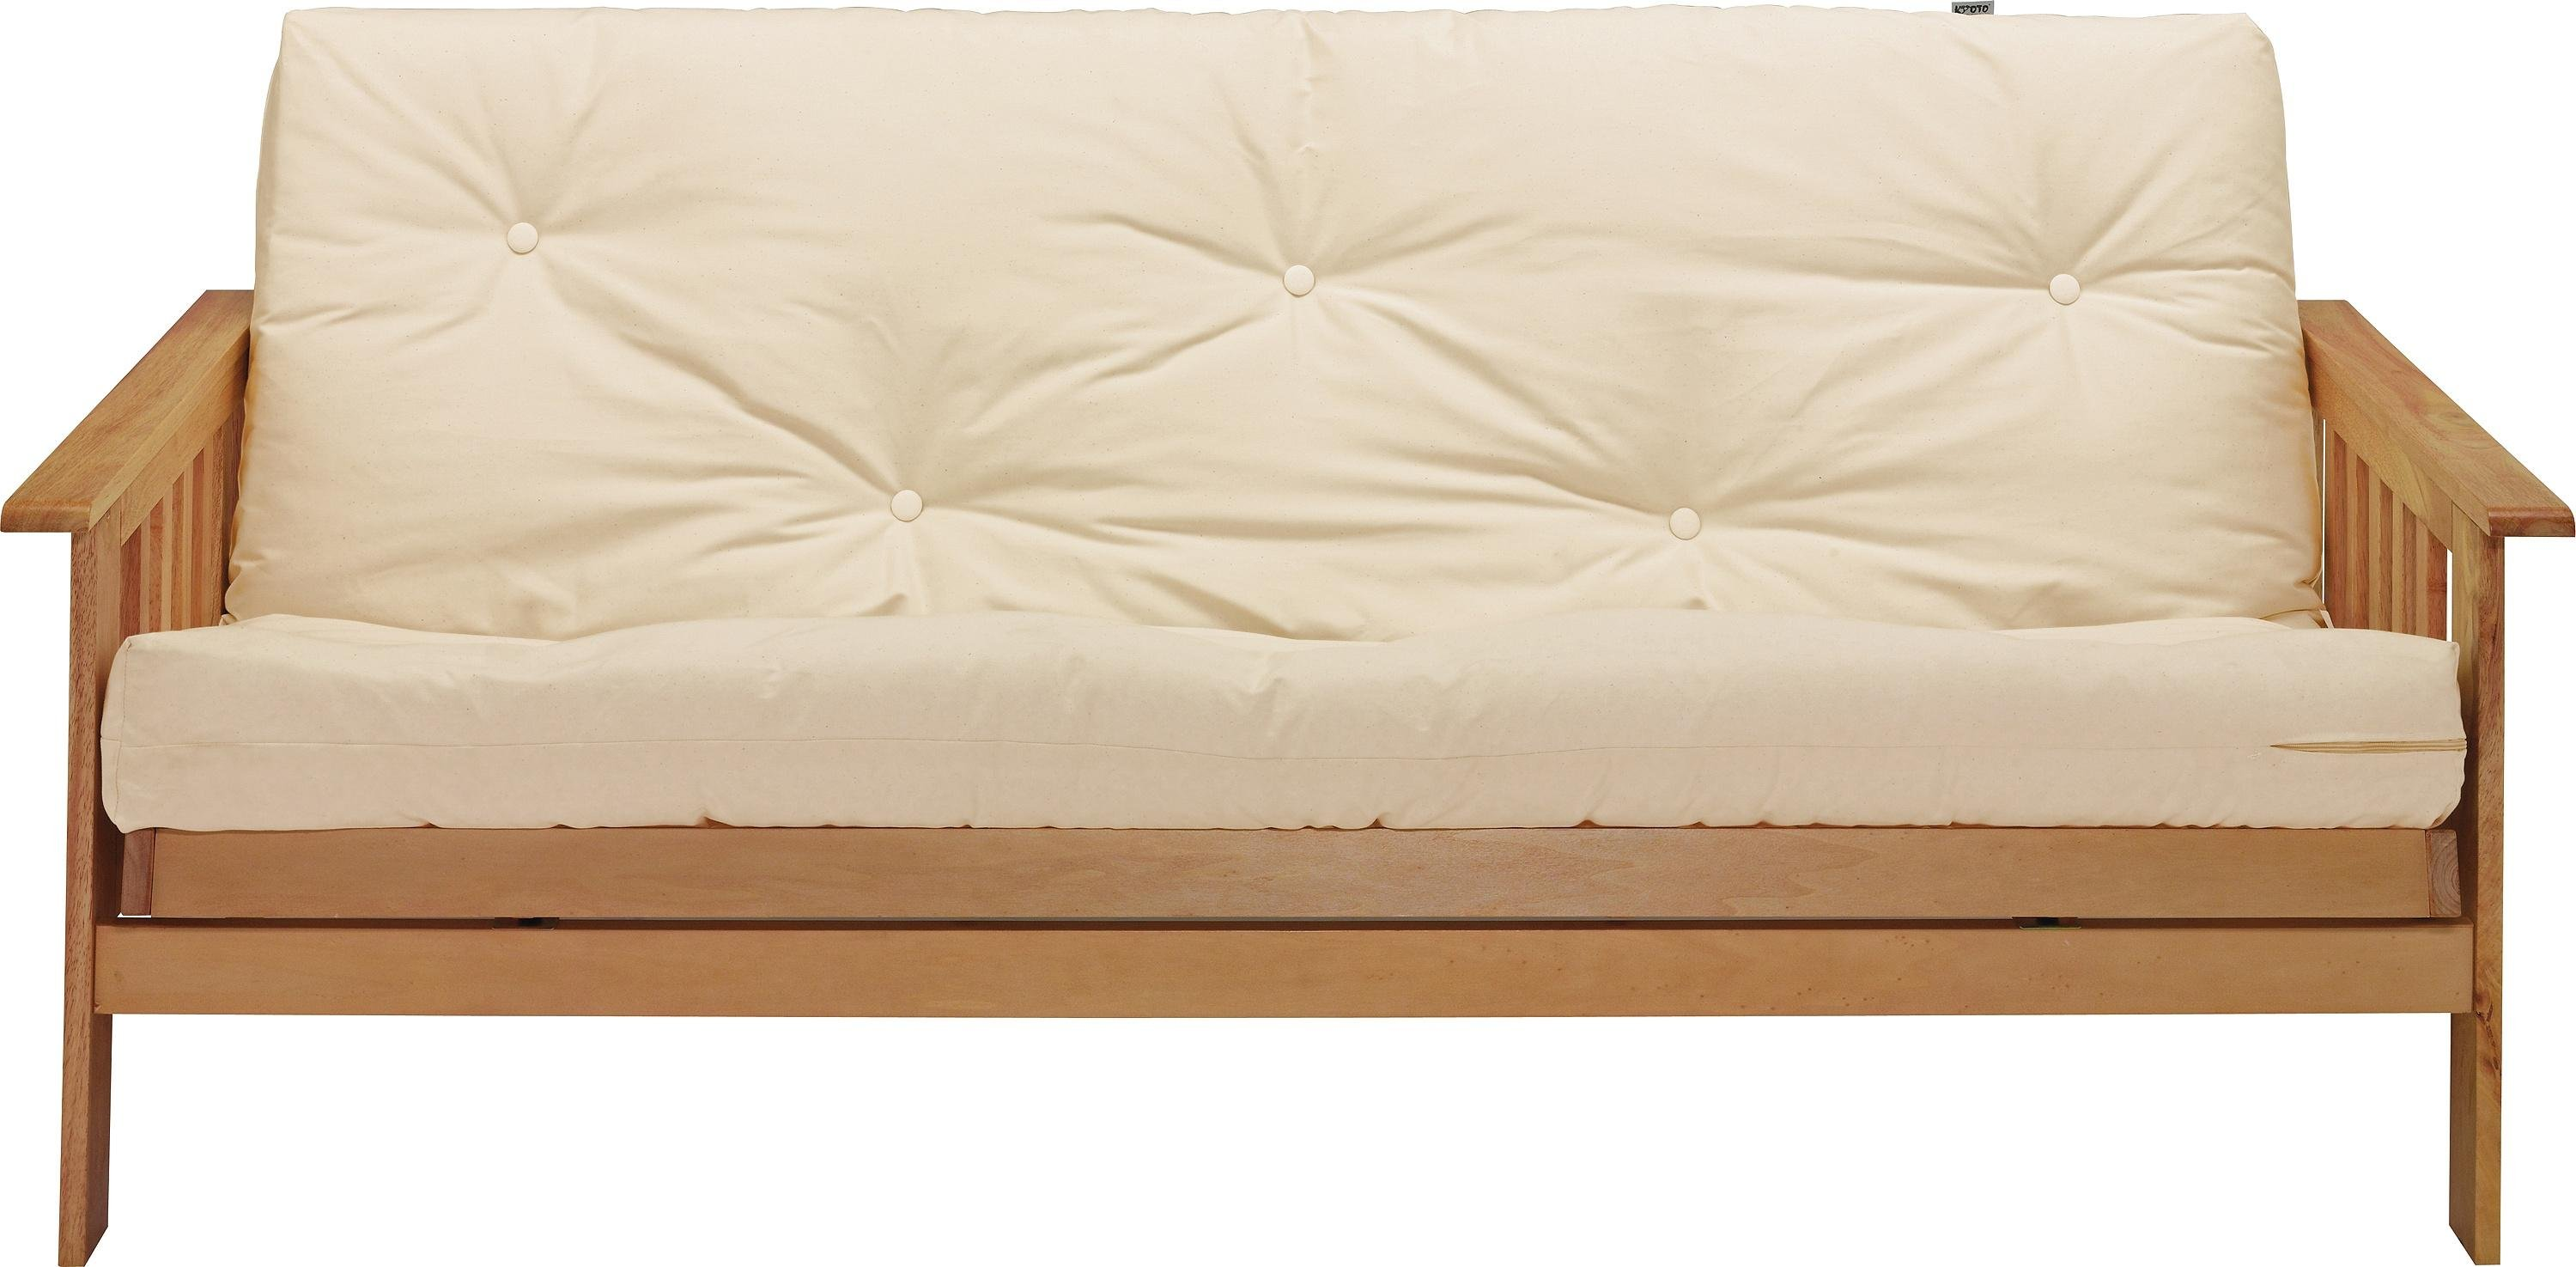 colourmatch cuba 2 seater futon sofa bed   cotton cream368 3826  colourmatch by argos argos futon   roselawnlutheran  rh   roselawnlutheran org